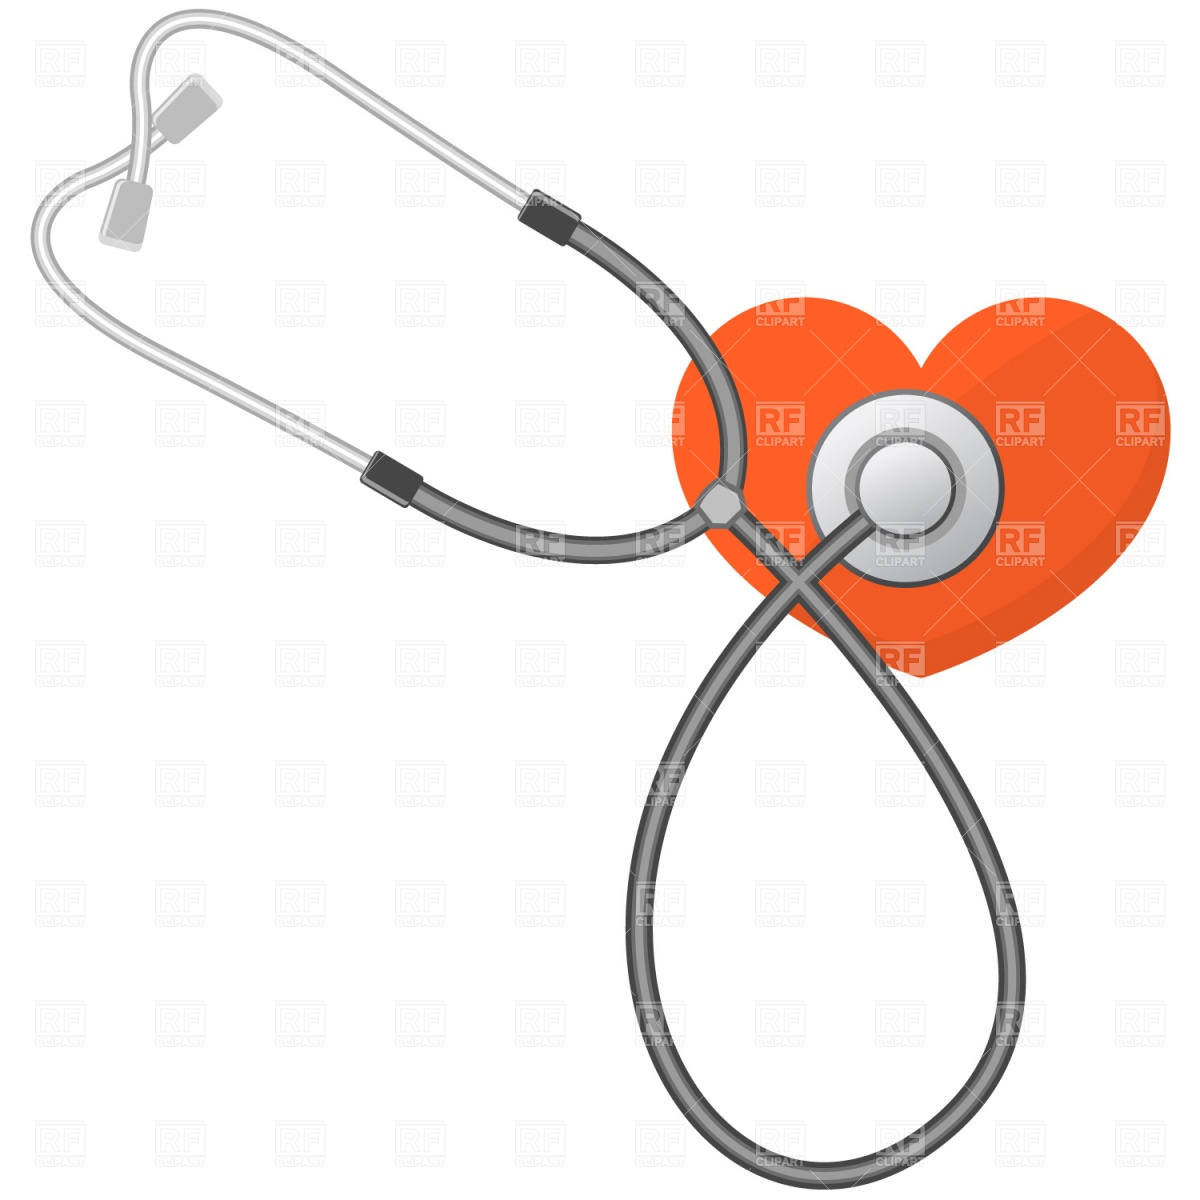 Stethoscope Clipart | Clipart Panda - Free Clipart Images